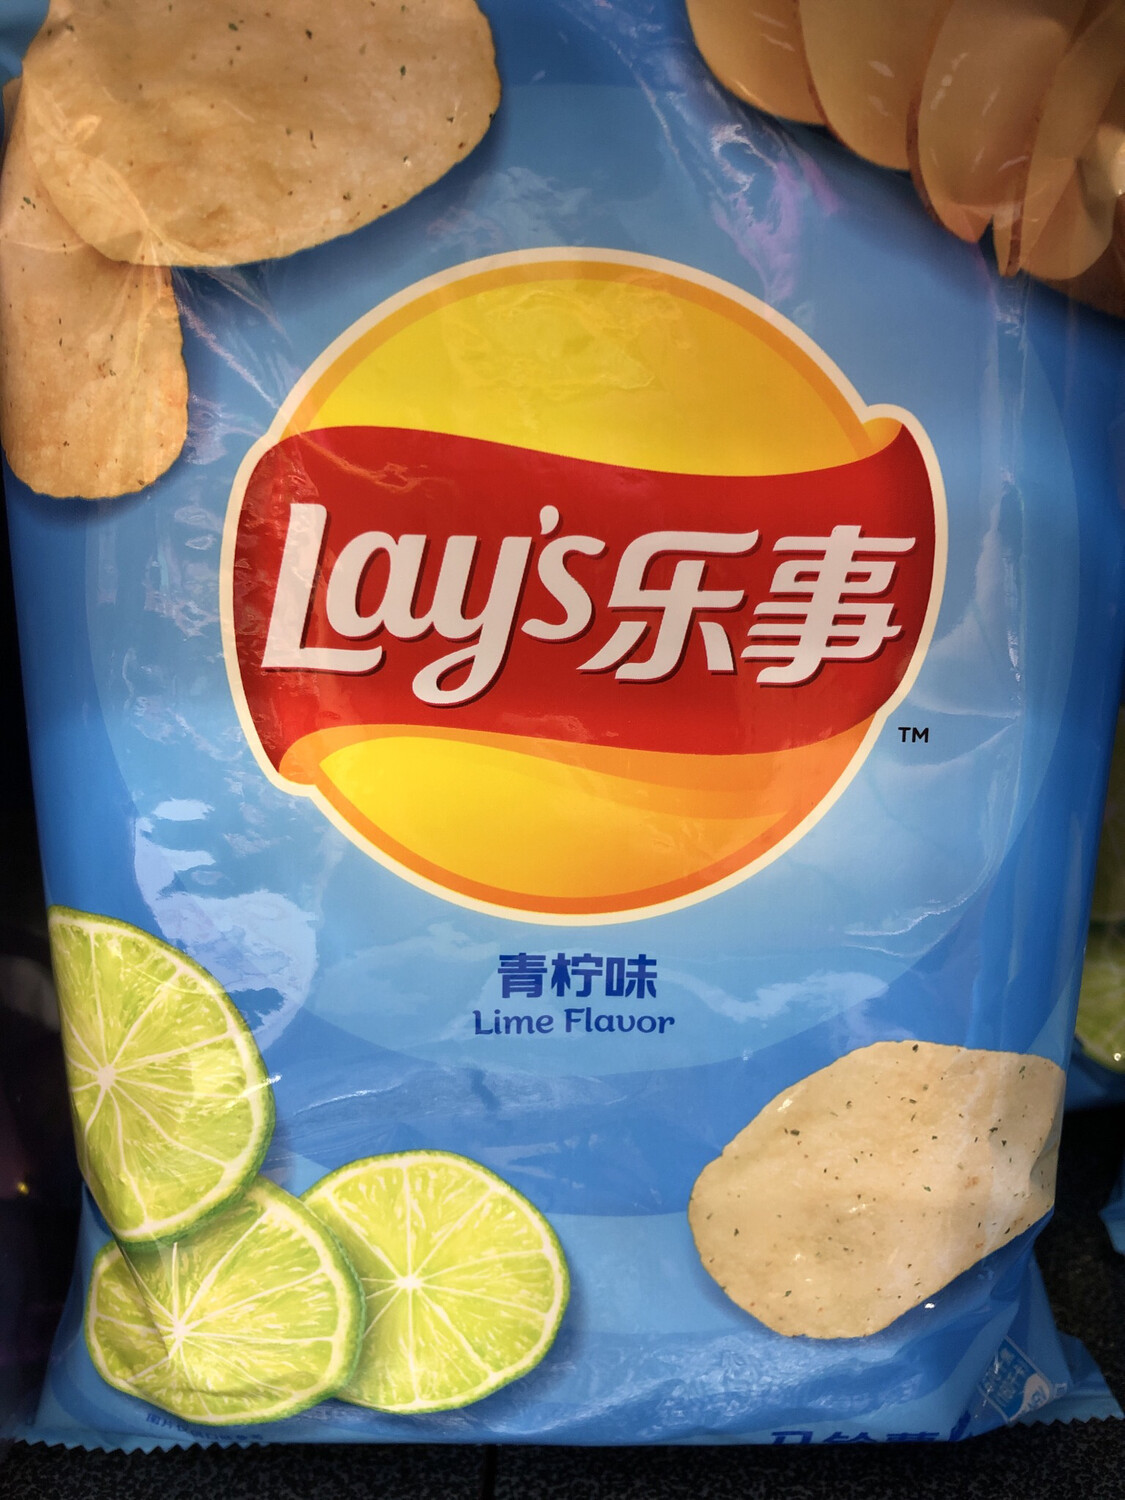 【RBG】Lay's Potato Chips (Lime Flavor)  乐事薯片 青柠味